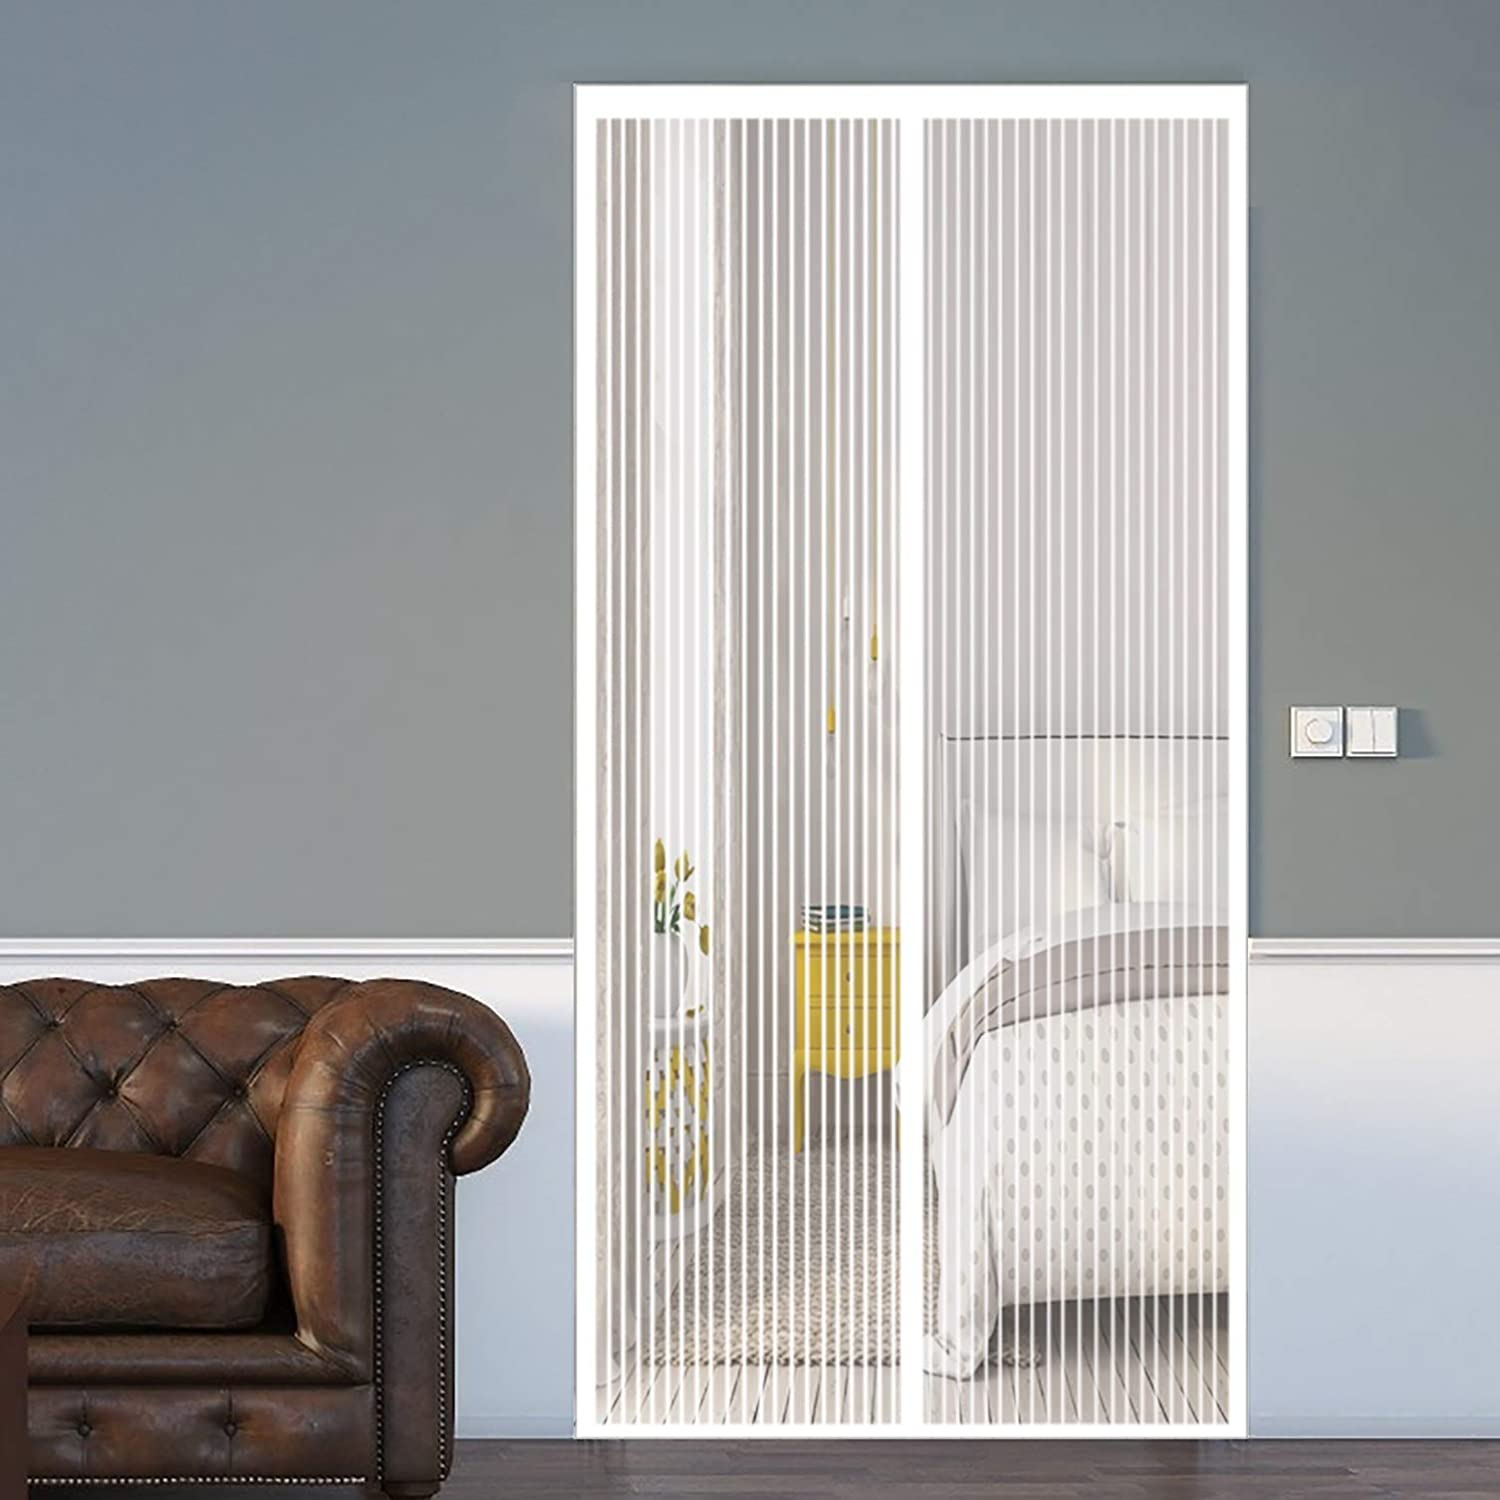 Magnetic Fly Insect Screen Door 170x200cm Max 69% OFF with Walk Heavy Great interest Duty